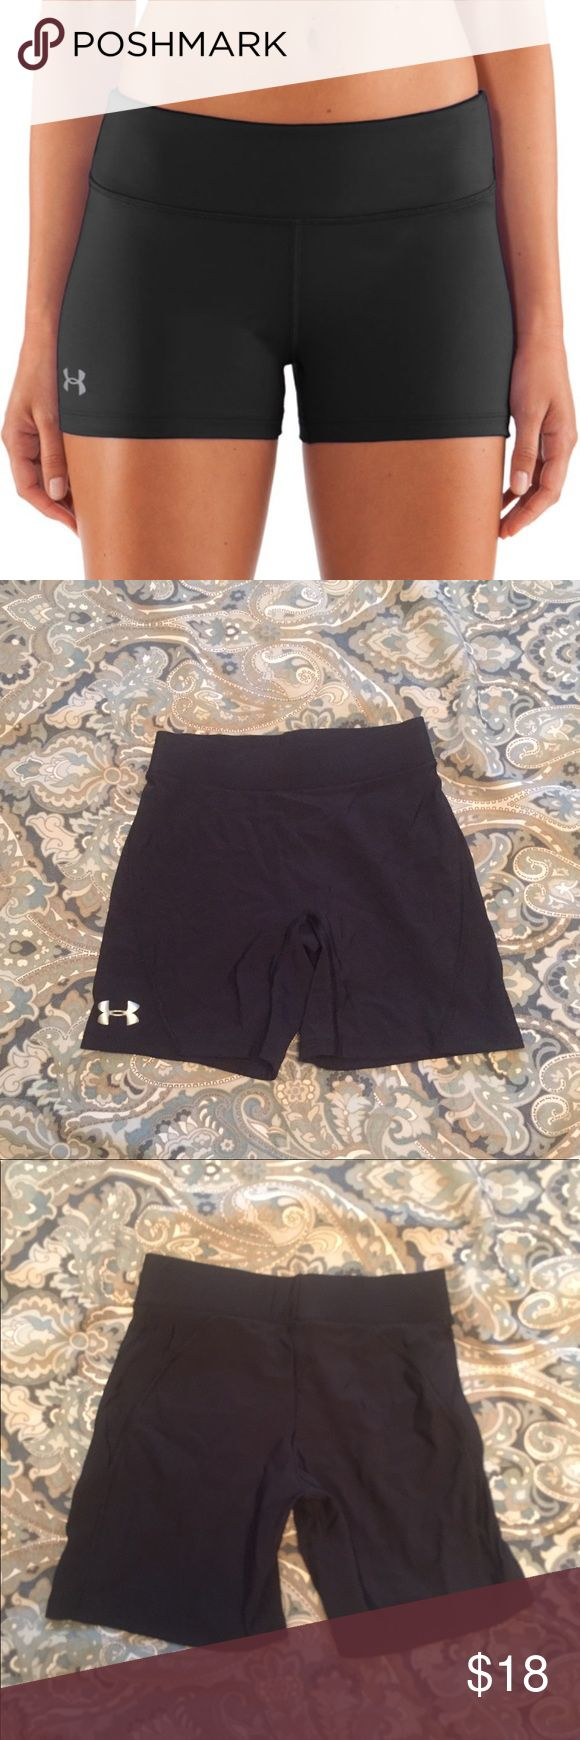 Under Armour spandex shorts Super comfy black spandex shorts for any activity whether it's running, yoga, playing volleyball, or just working out in general! Very stretchy and barely worn. Size XS. Under Armour Shorts